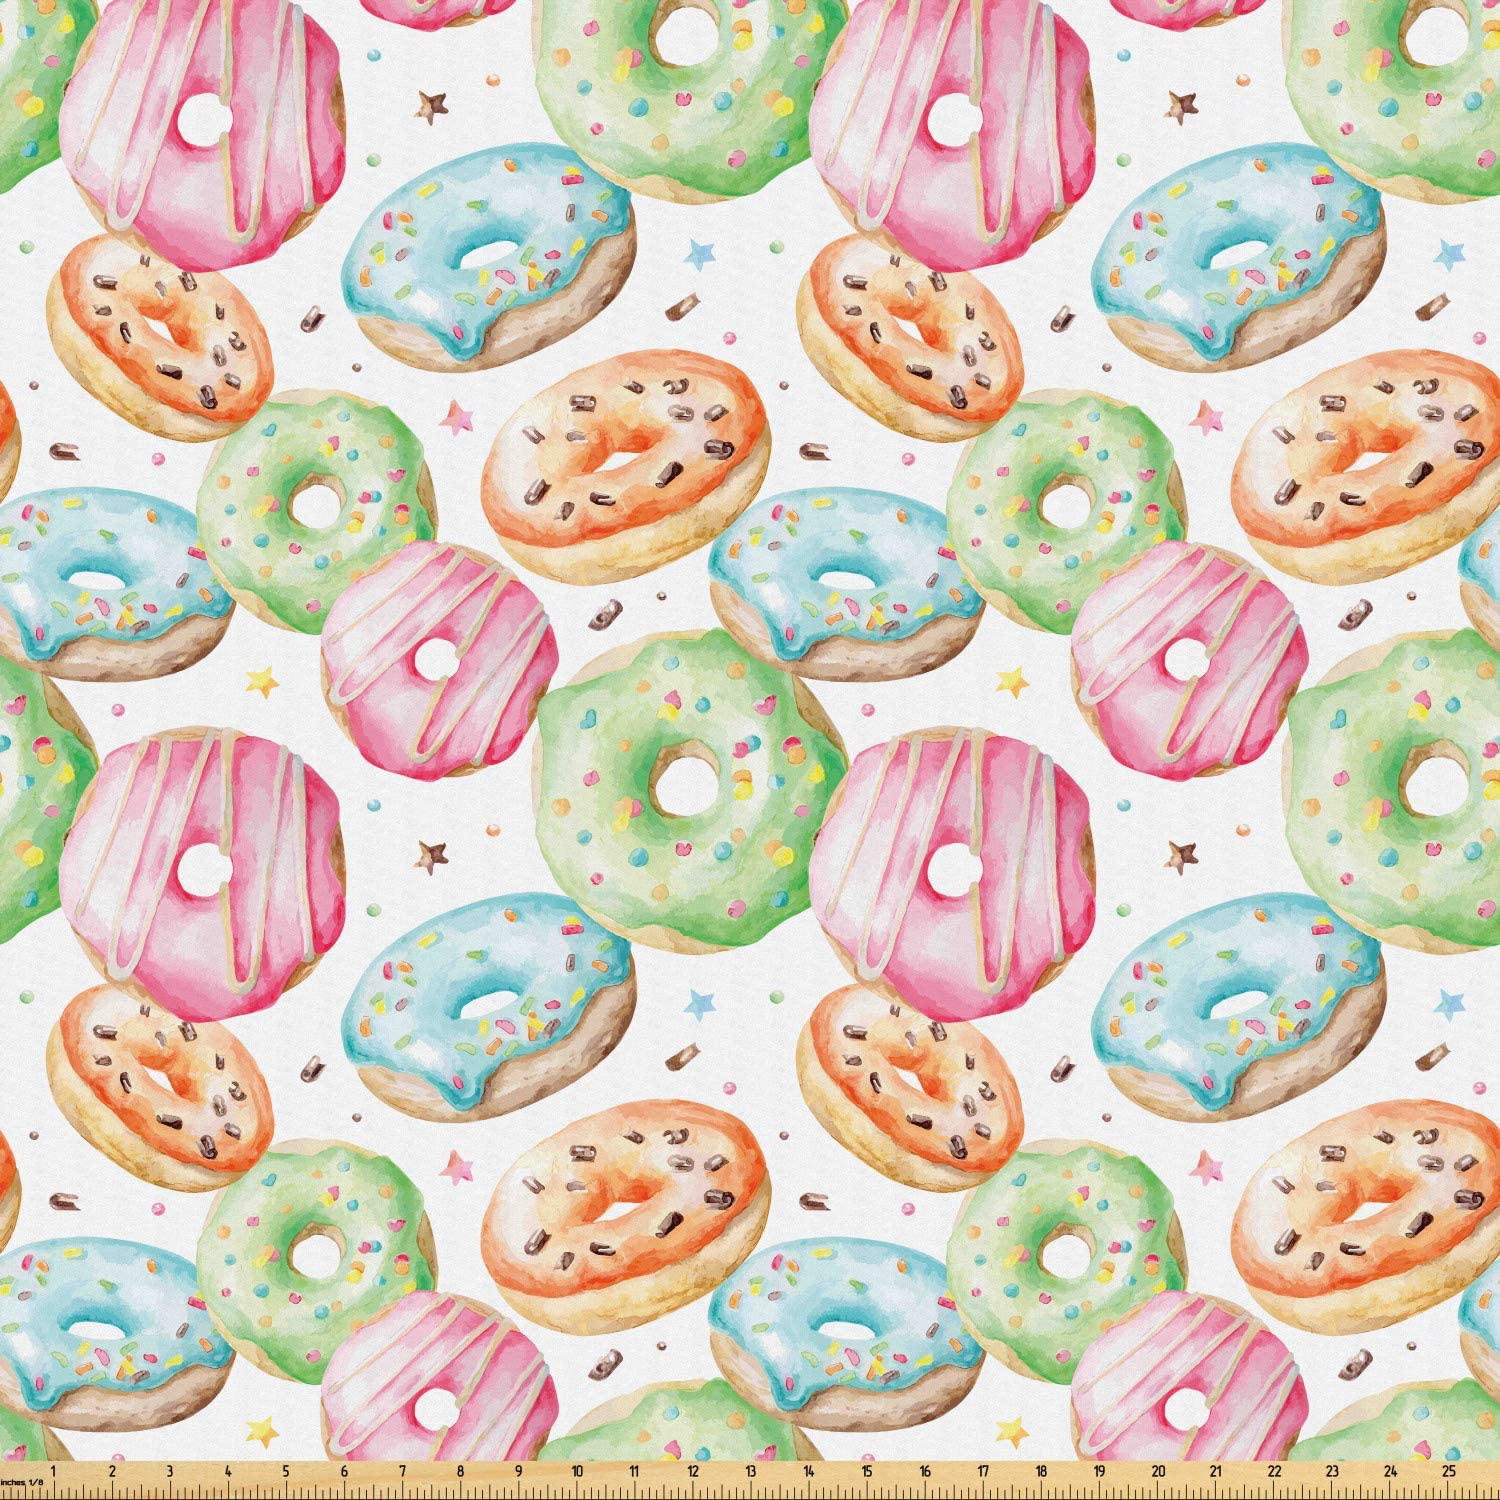 Ambesonne Watercolor Fabric by The Yard, Delicious Donuts Pattern with Various Flavors Sprinkles Stars Background, Microfiber Fabric for Arts and Crafts Textiles & Decor, 2 Yards, Multicolor